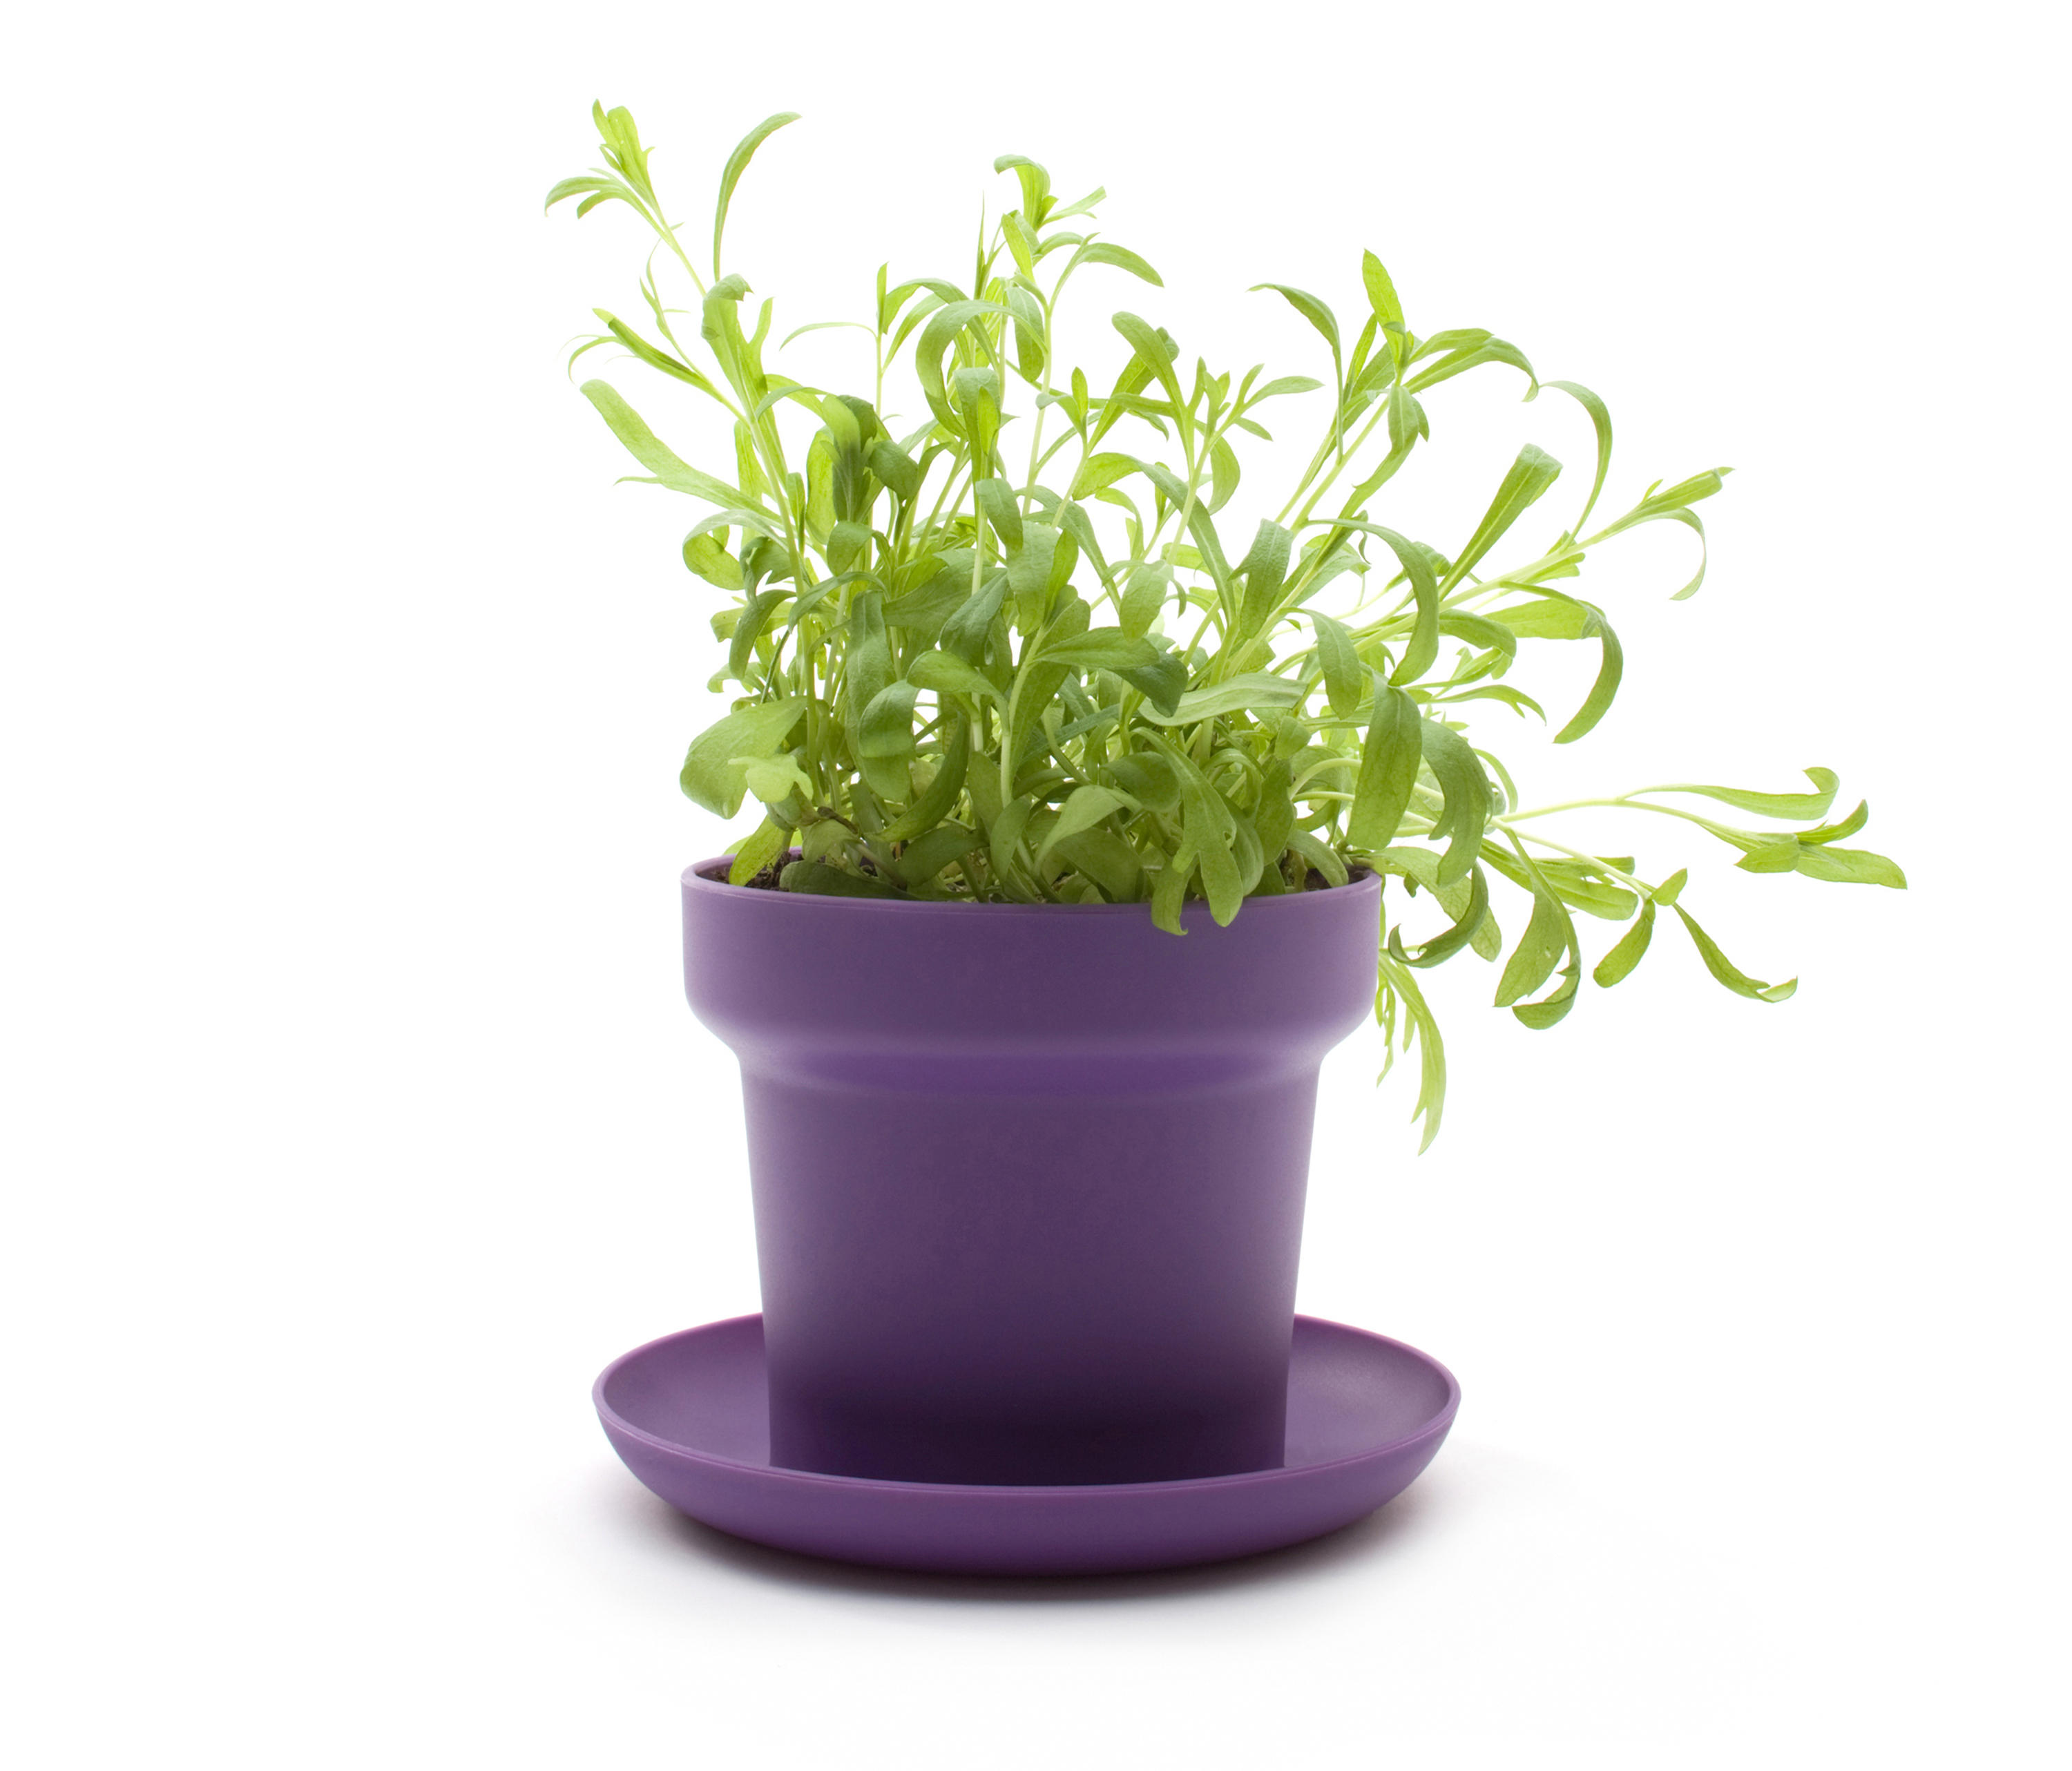 Green Planter Green Plant Pot Plant Pots From Authentics Architonic